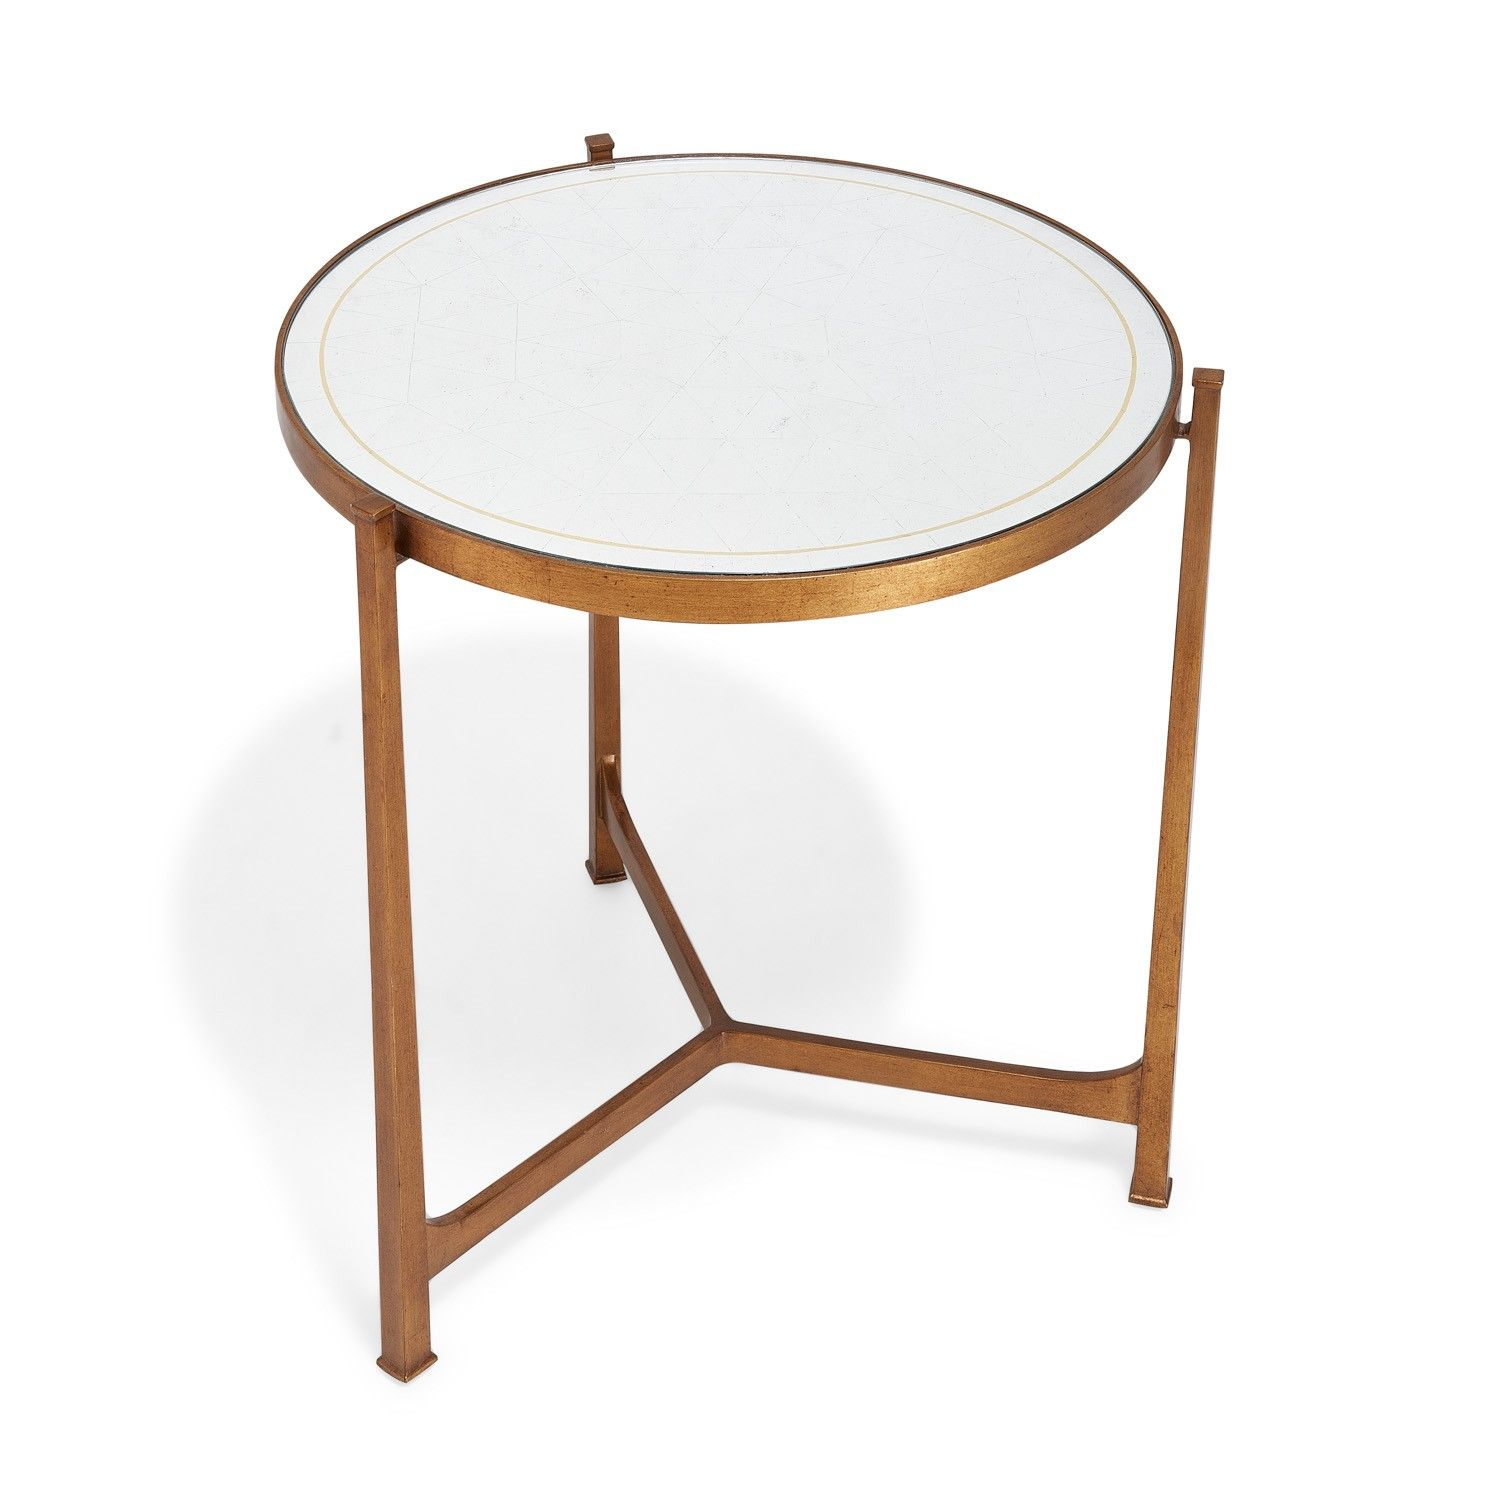 With a warm antique aesthetic the distressed églomisé glass top is